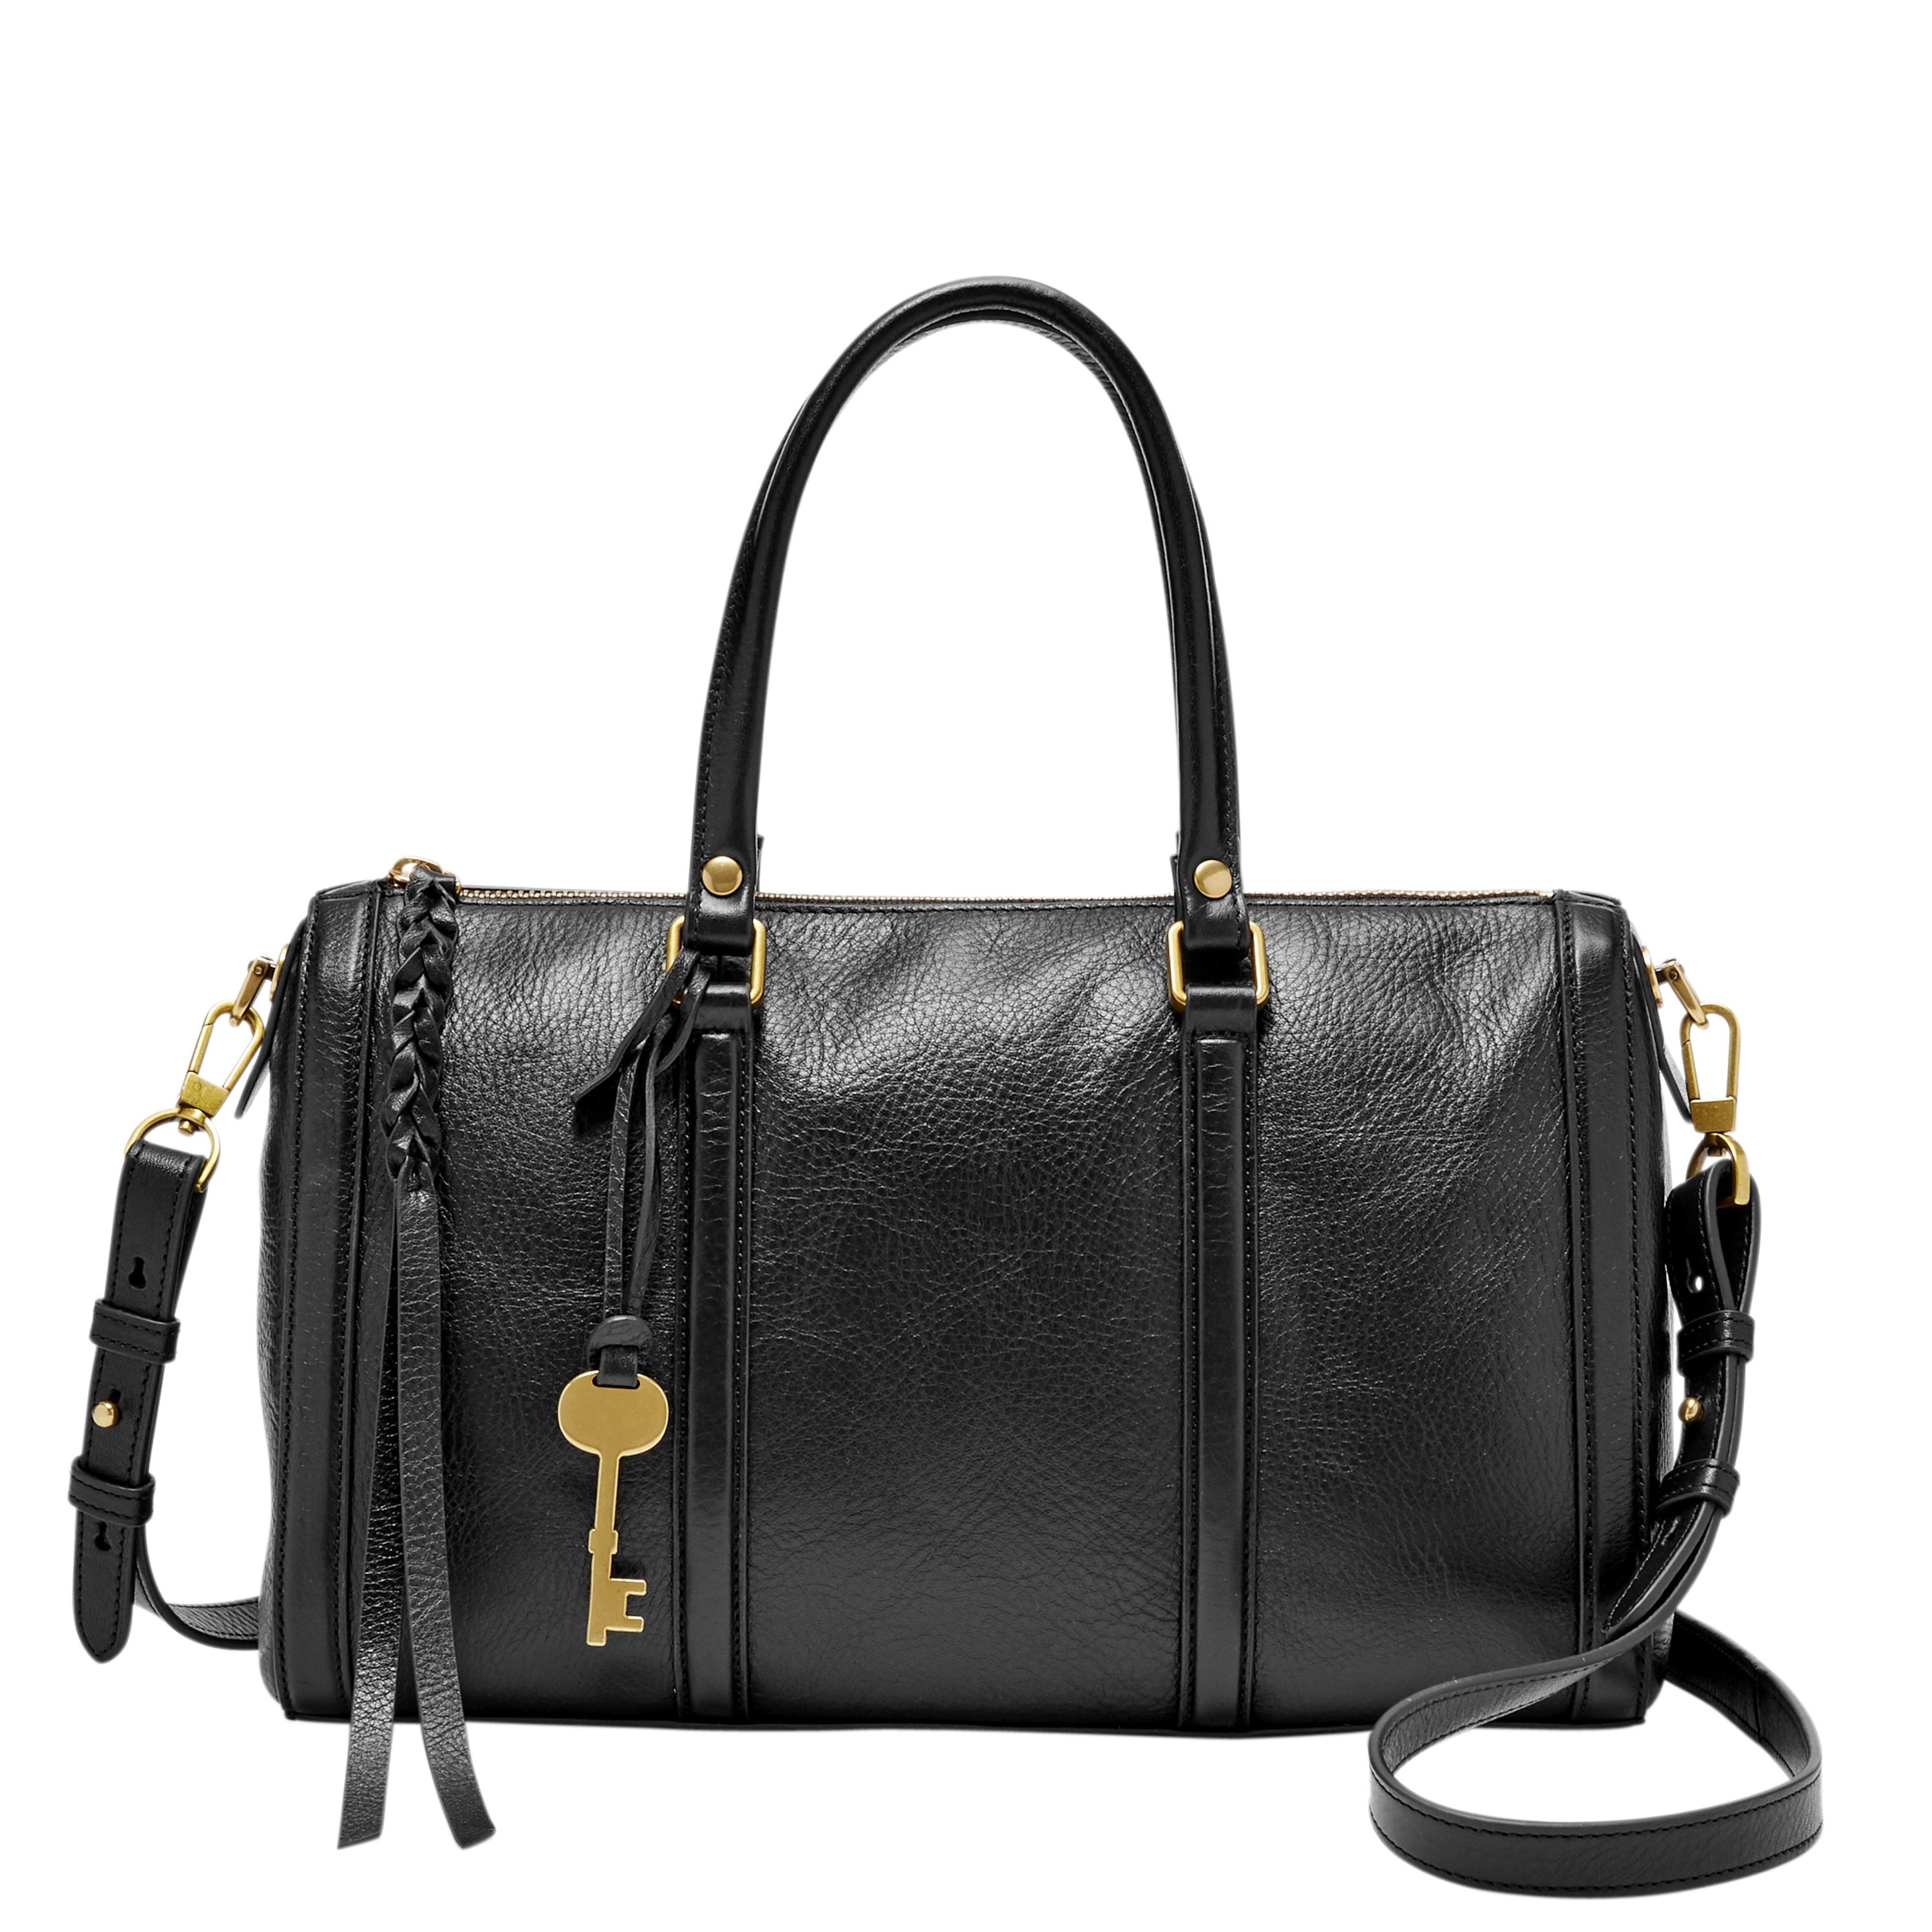 Fossil ZB7108001 Ladies Crossbody Bag Black